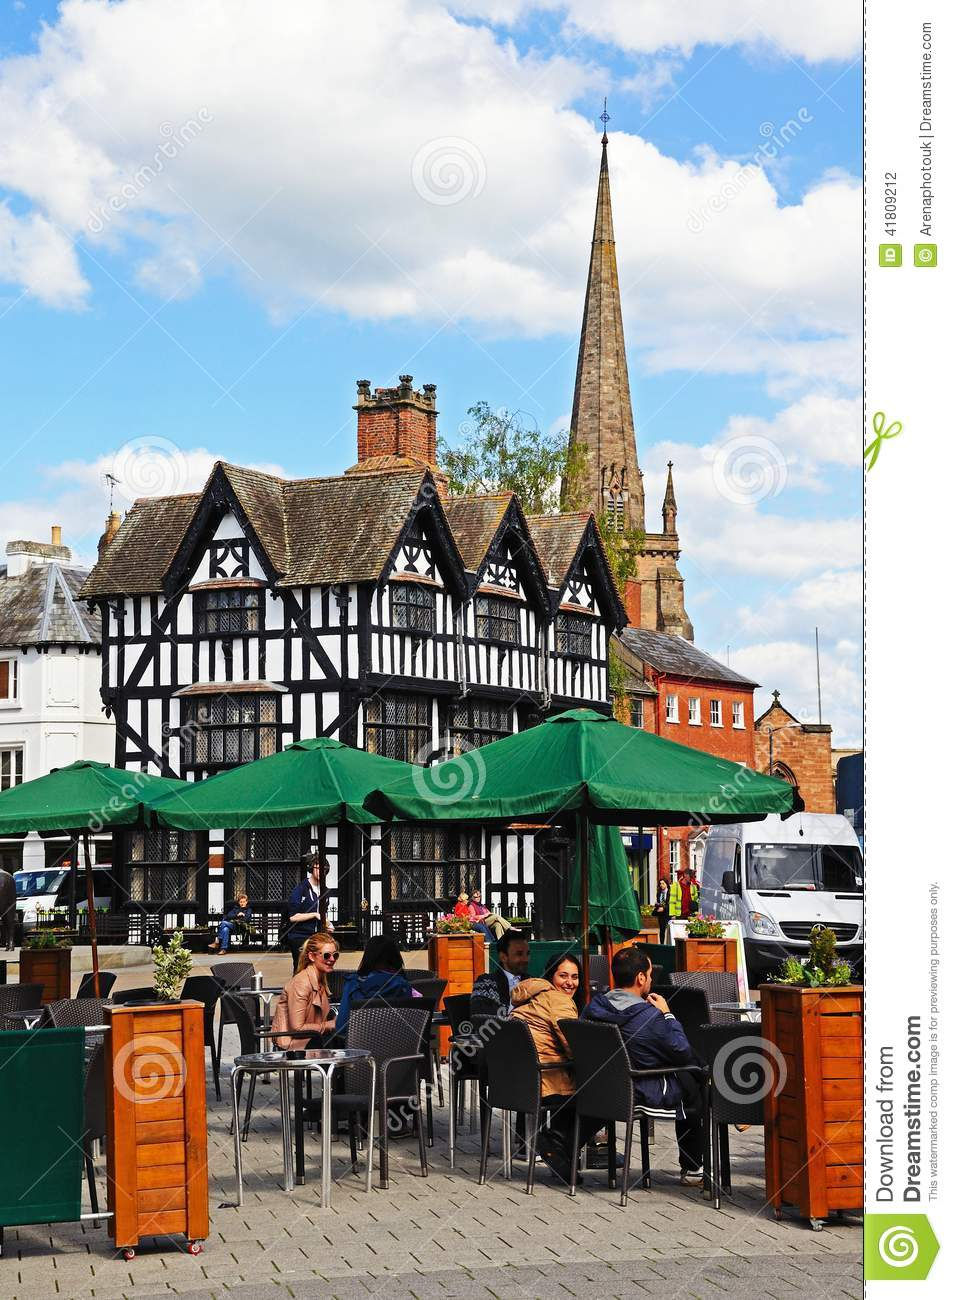 Pavement Cafe Royalty Free Stock Photography